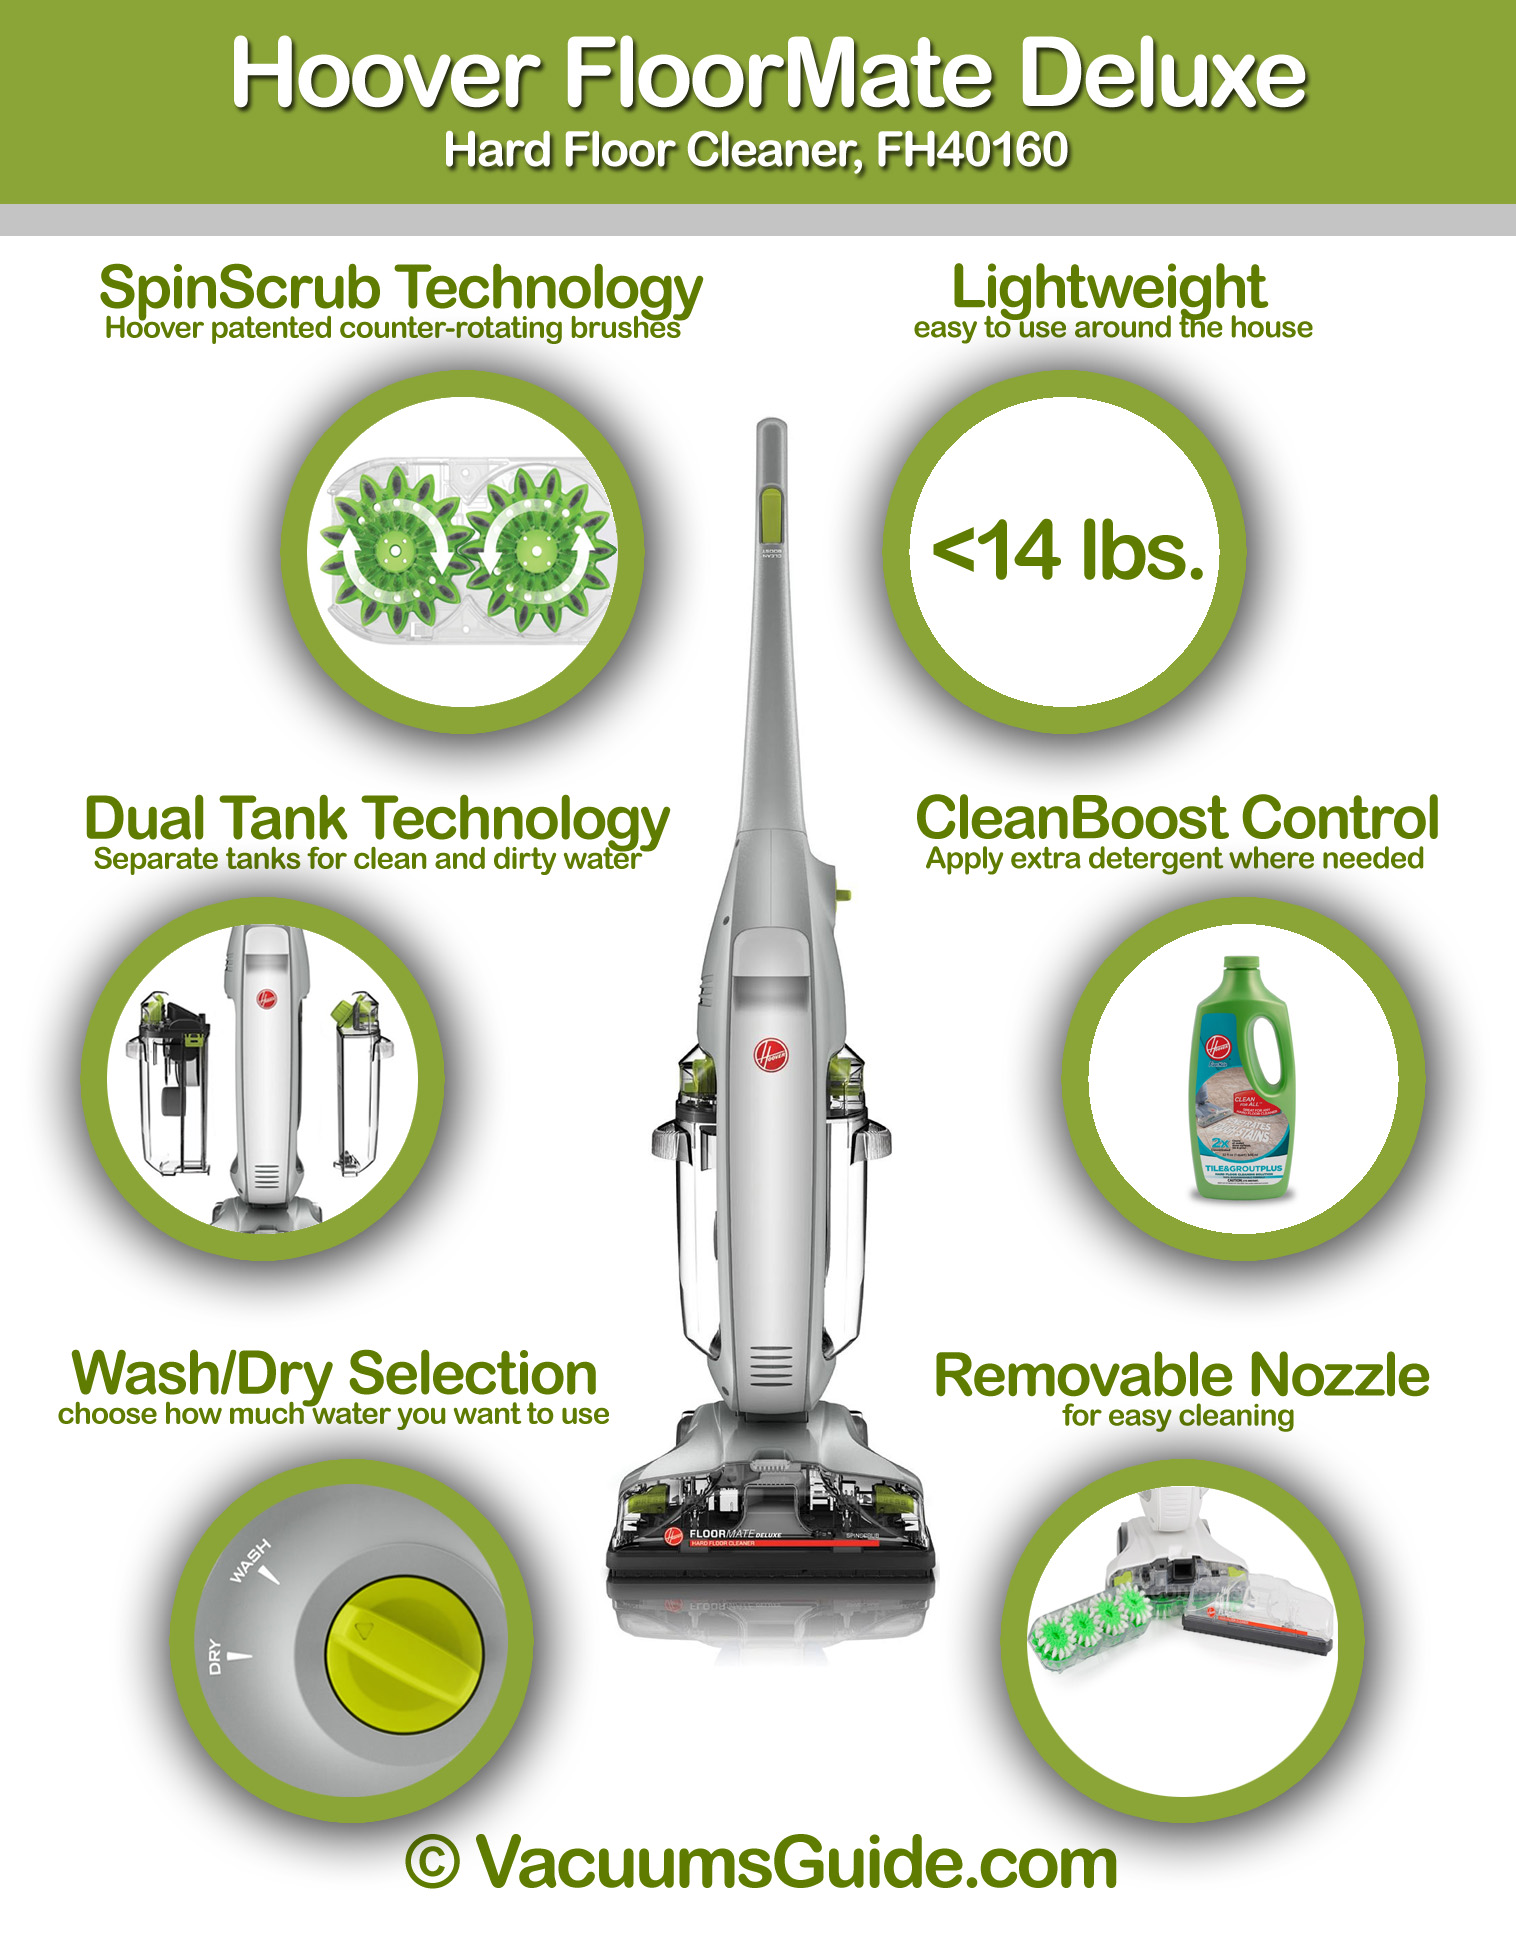 Hoover Floormate Deluxe Features